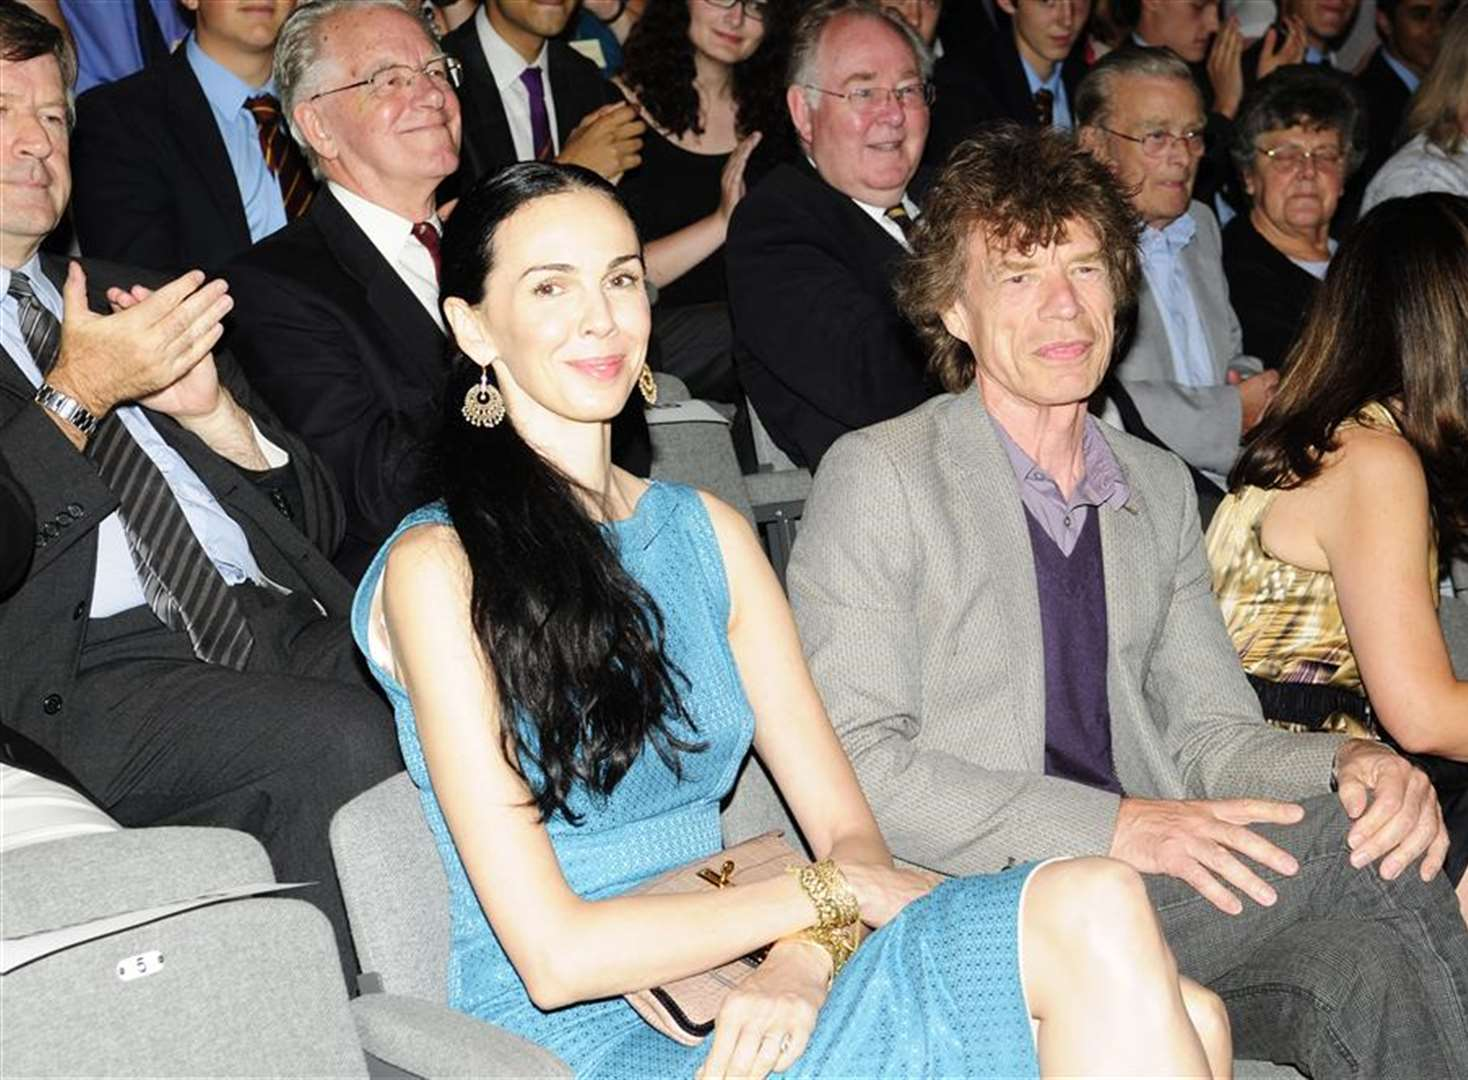 Council leader pays tribute to L'Wren Scott